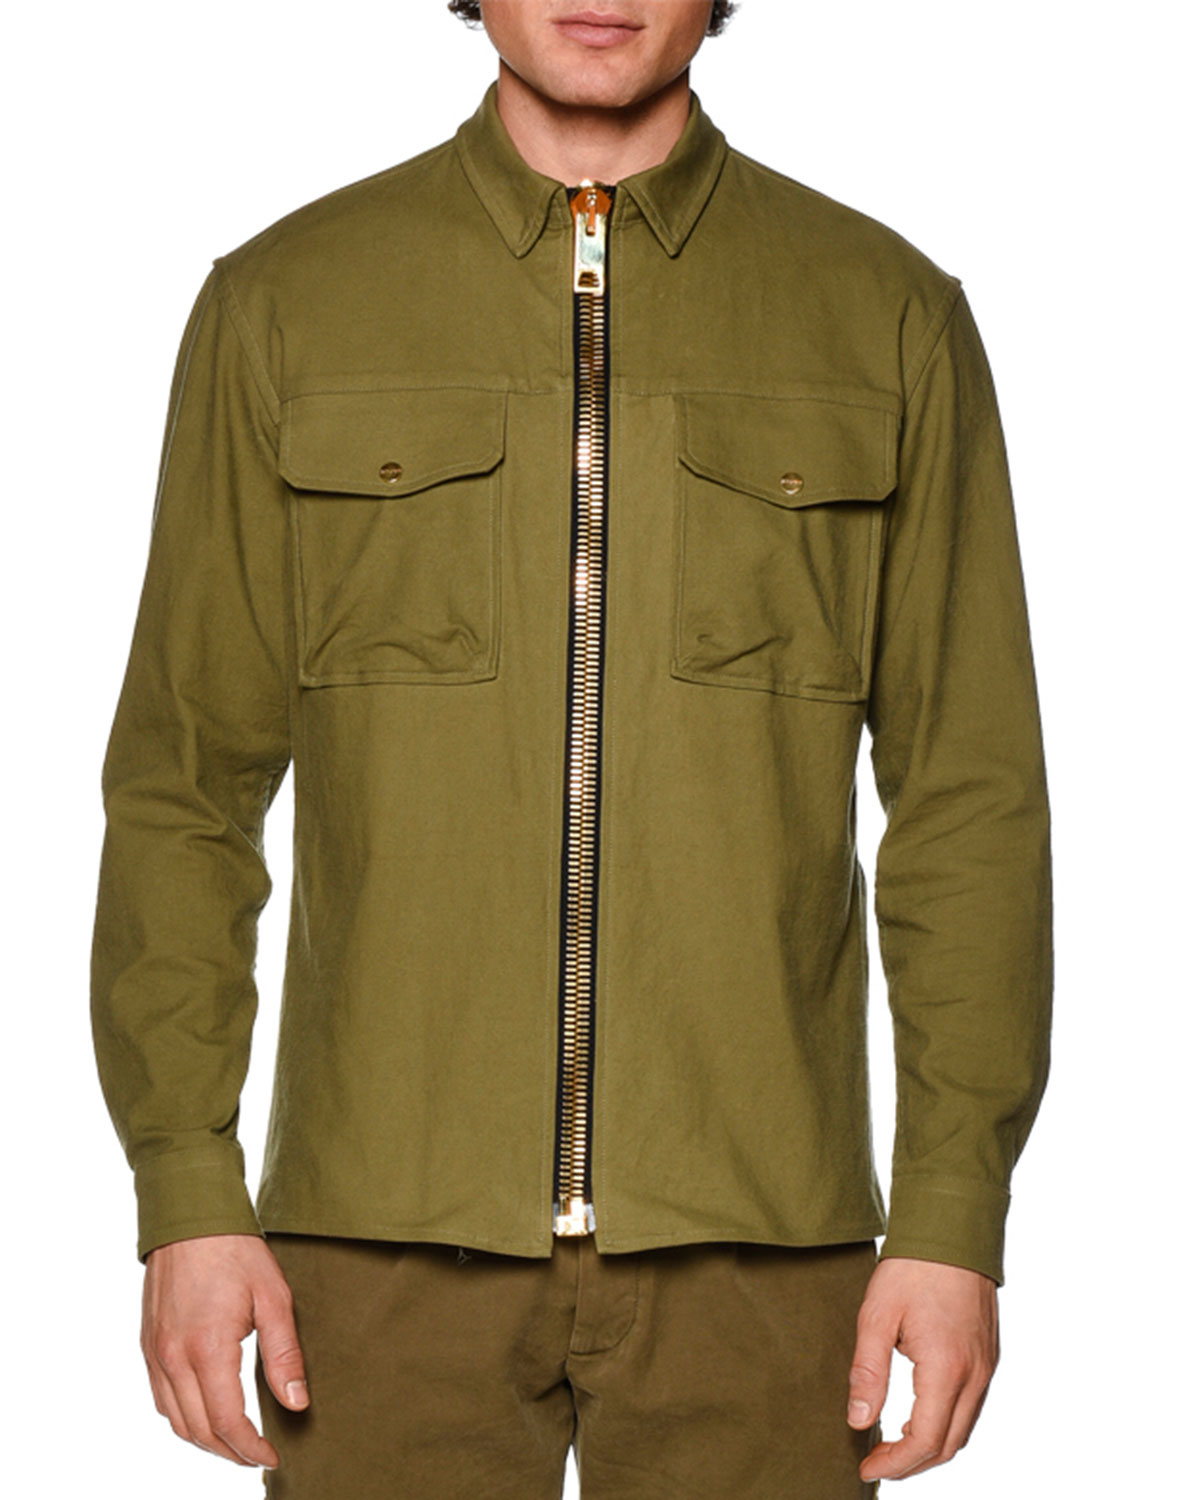 Maxi Zip-Up Military Jacket, Military Green